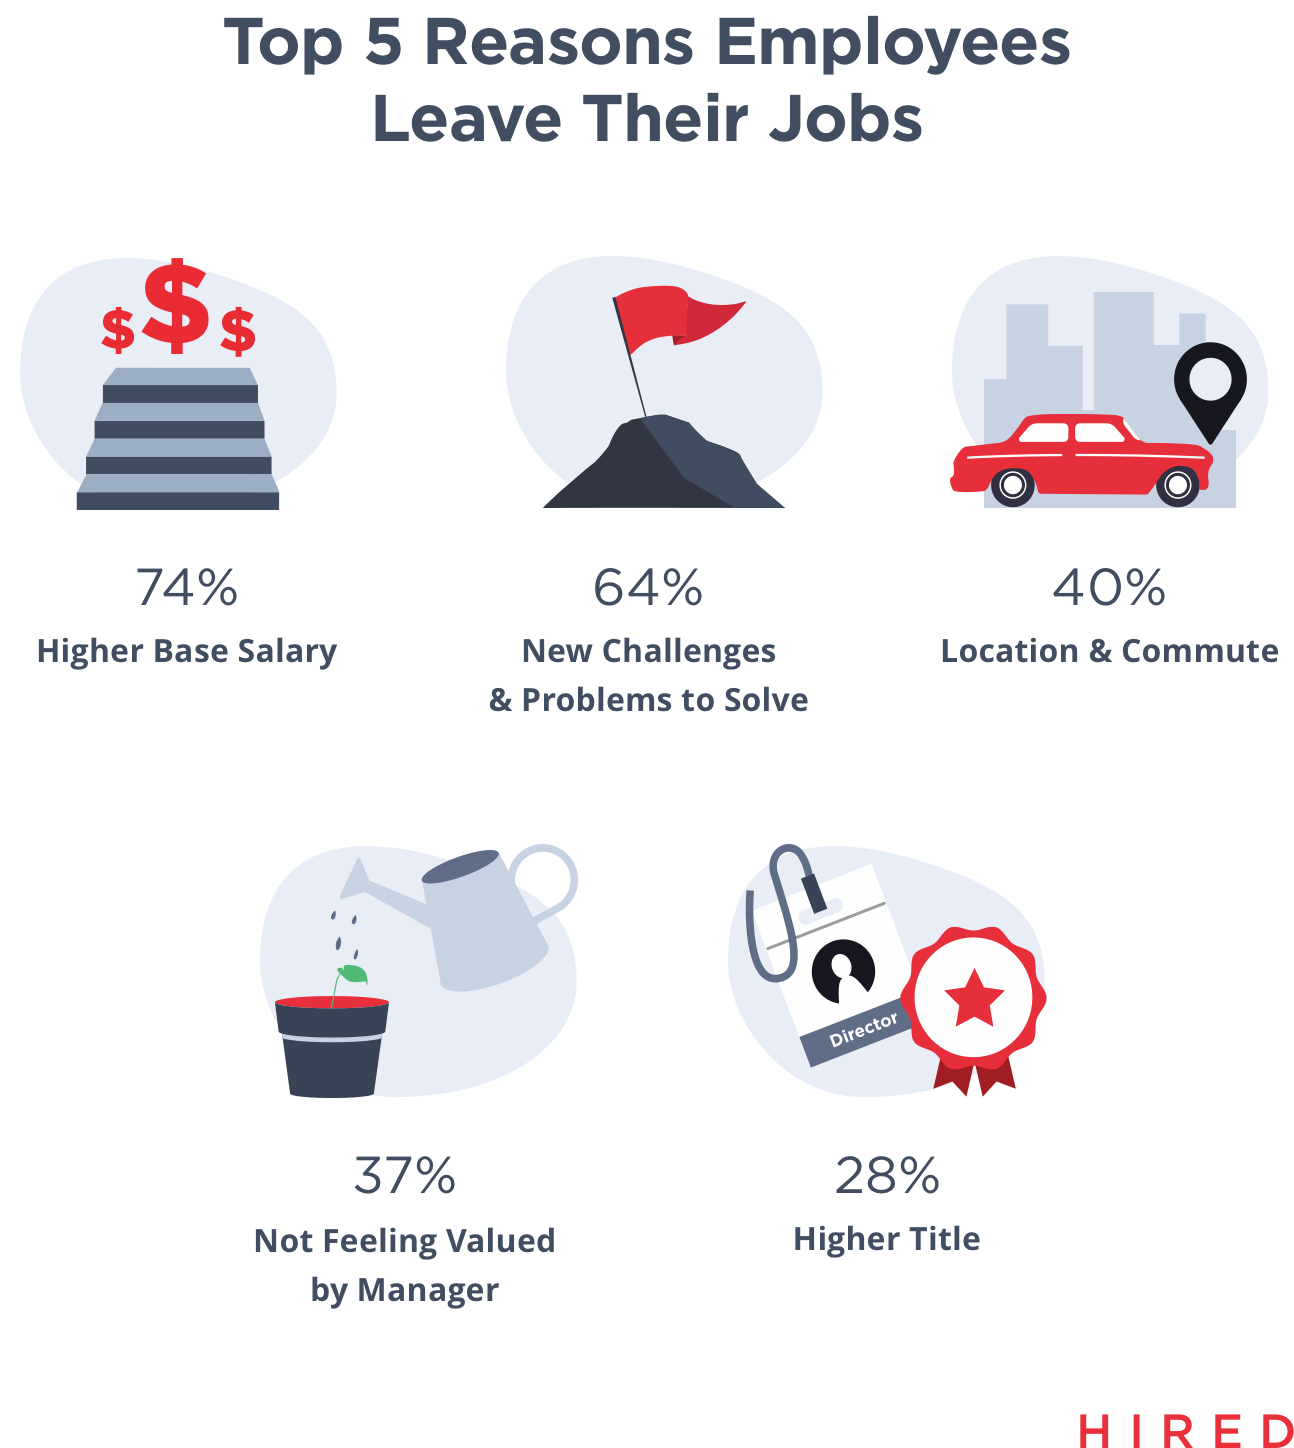 04-Reasons-employees-leave-their-jobs@2x